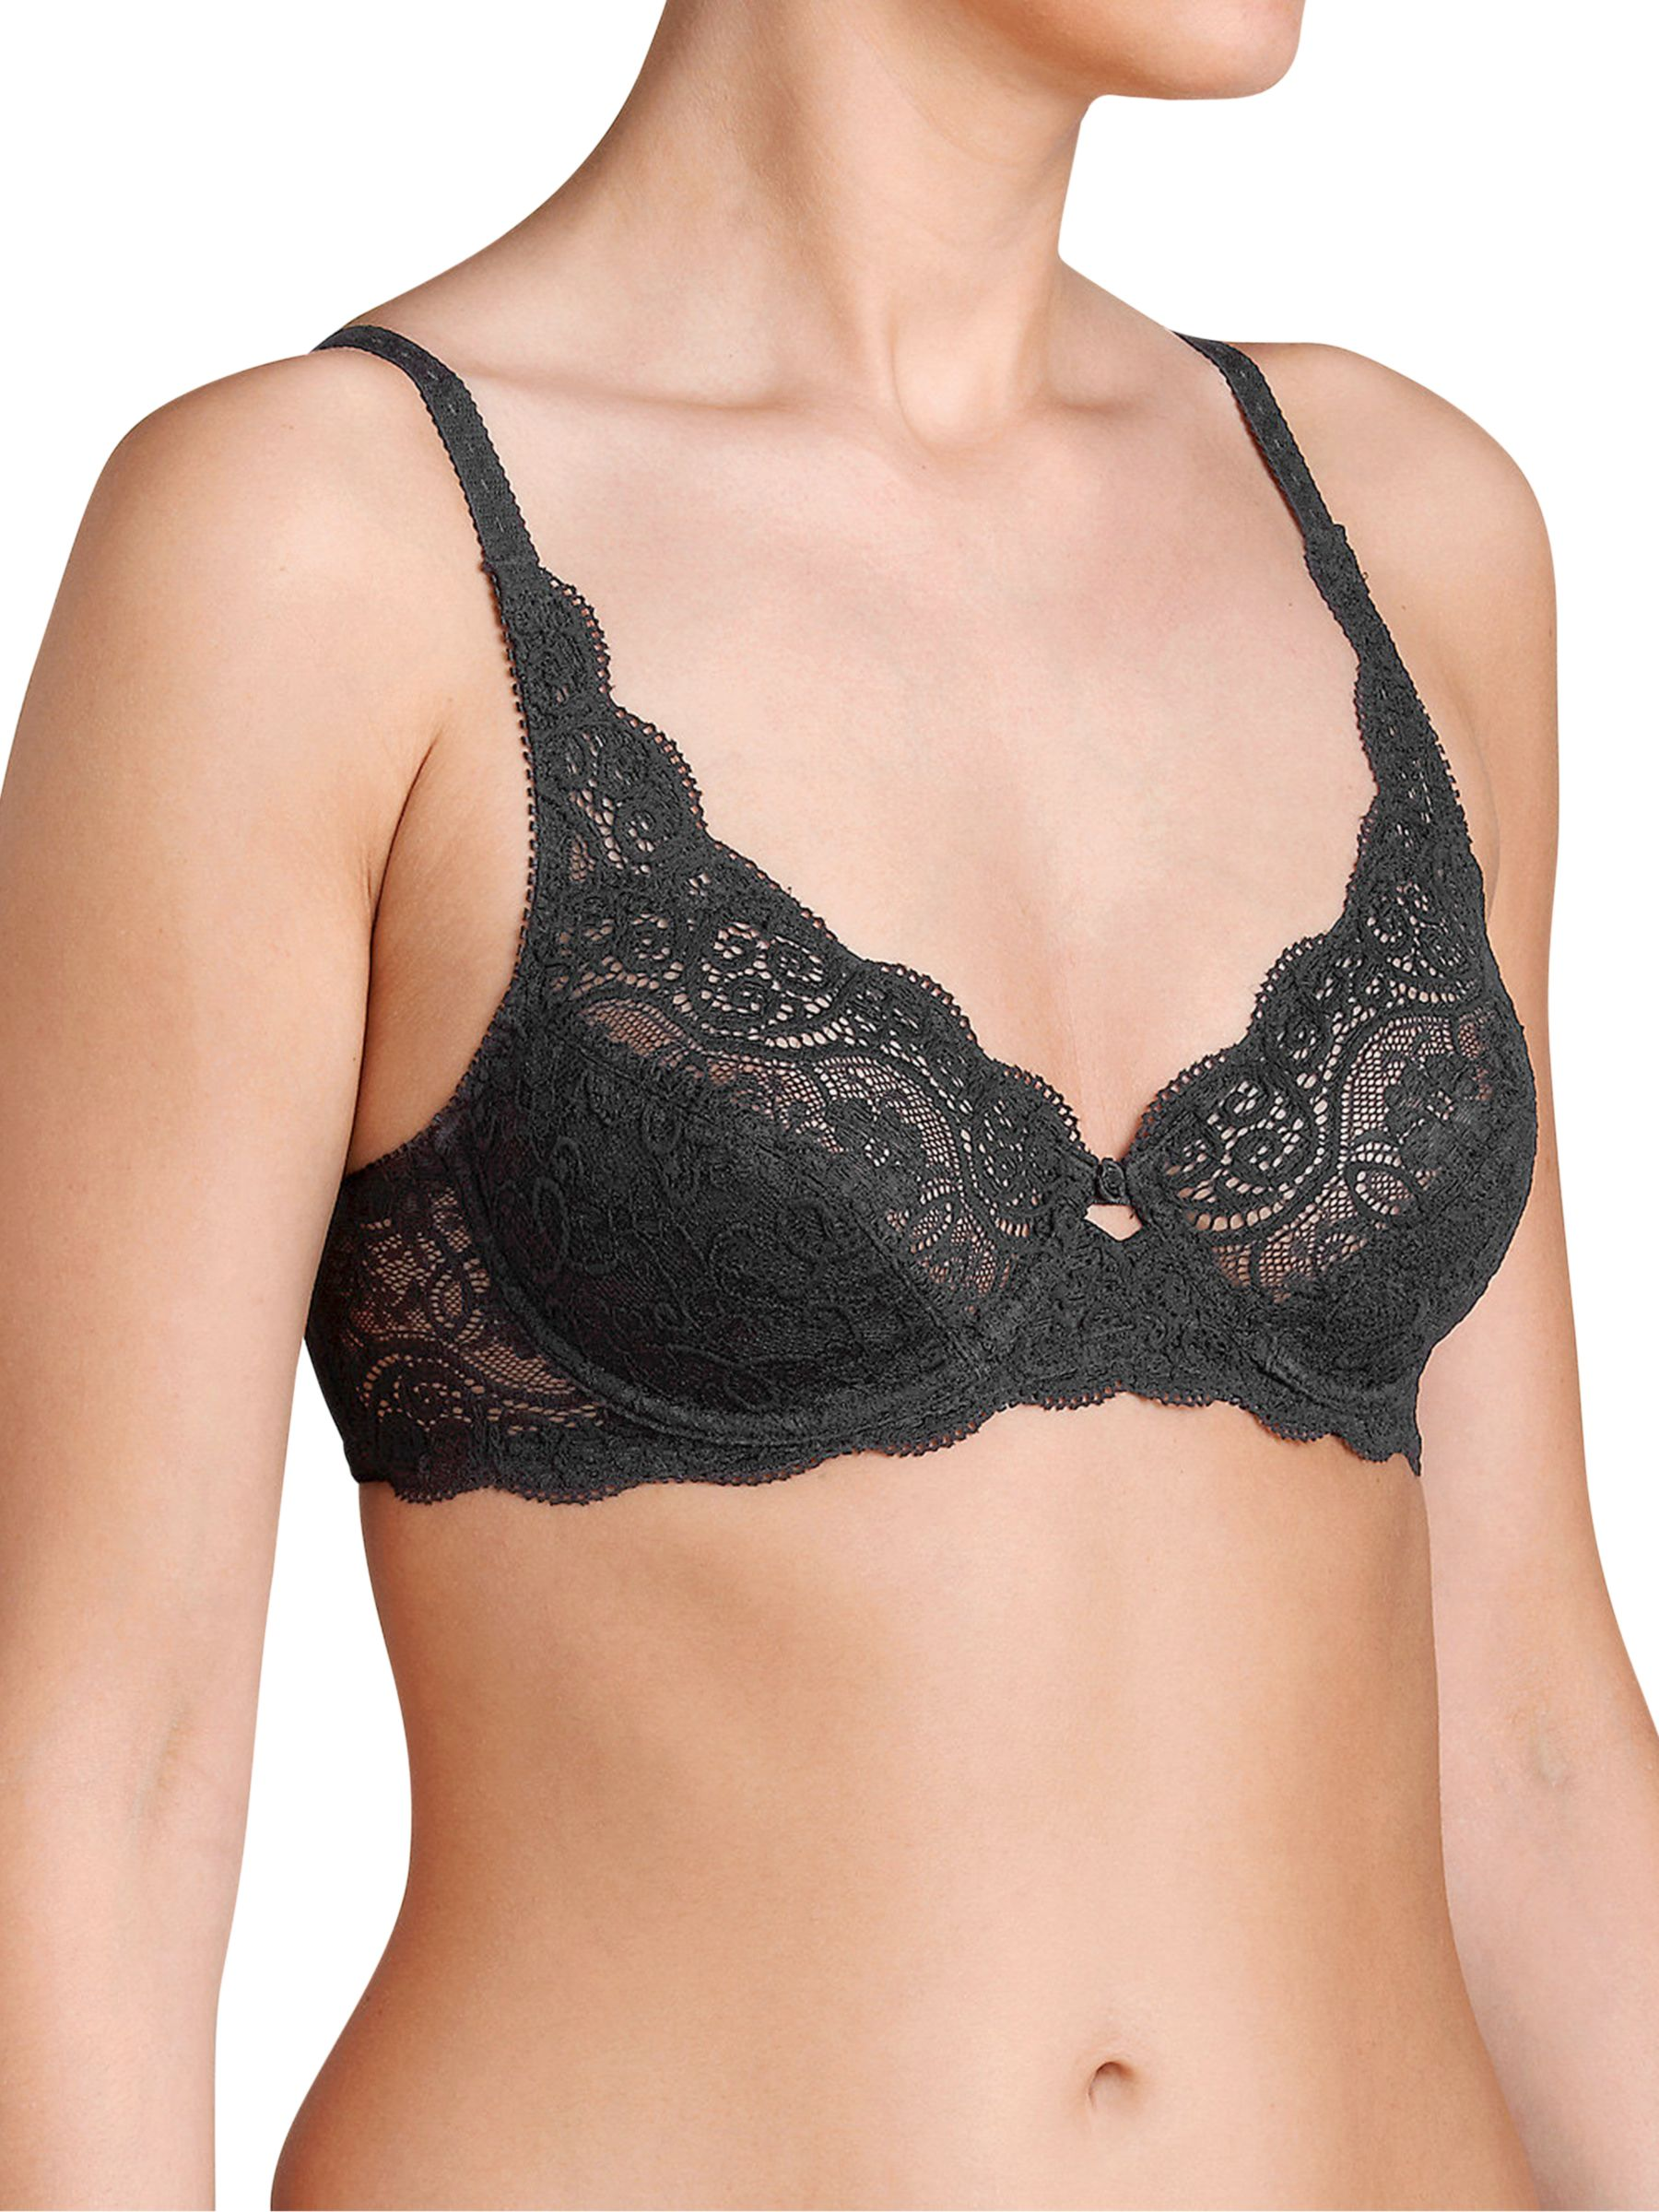 Triumph Triumph Amourette 300 Underwired Bra, Black